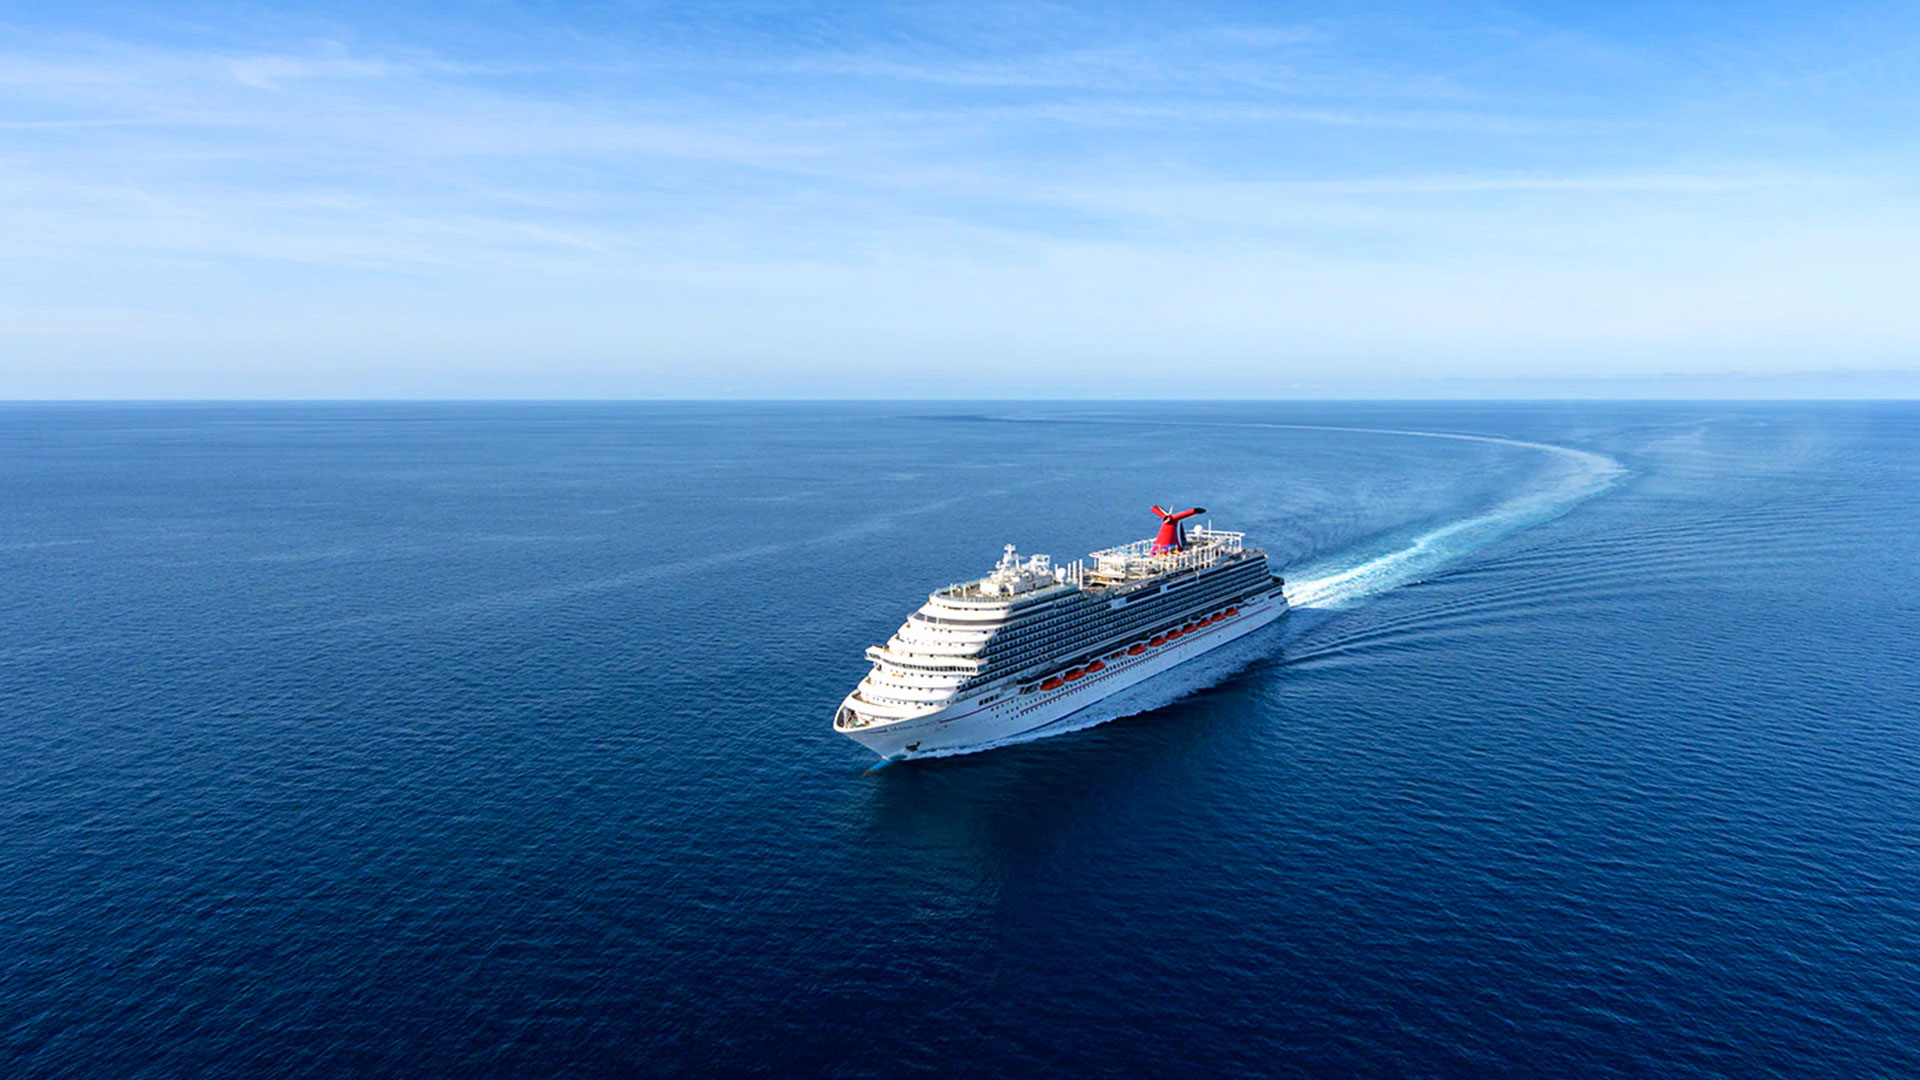 FIVE NEW CARNIVAL CRUISE SHIPS SAILING JUST FOR YOU